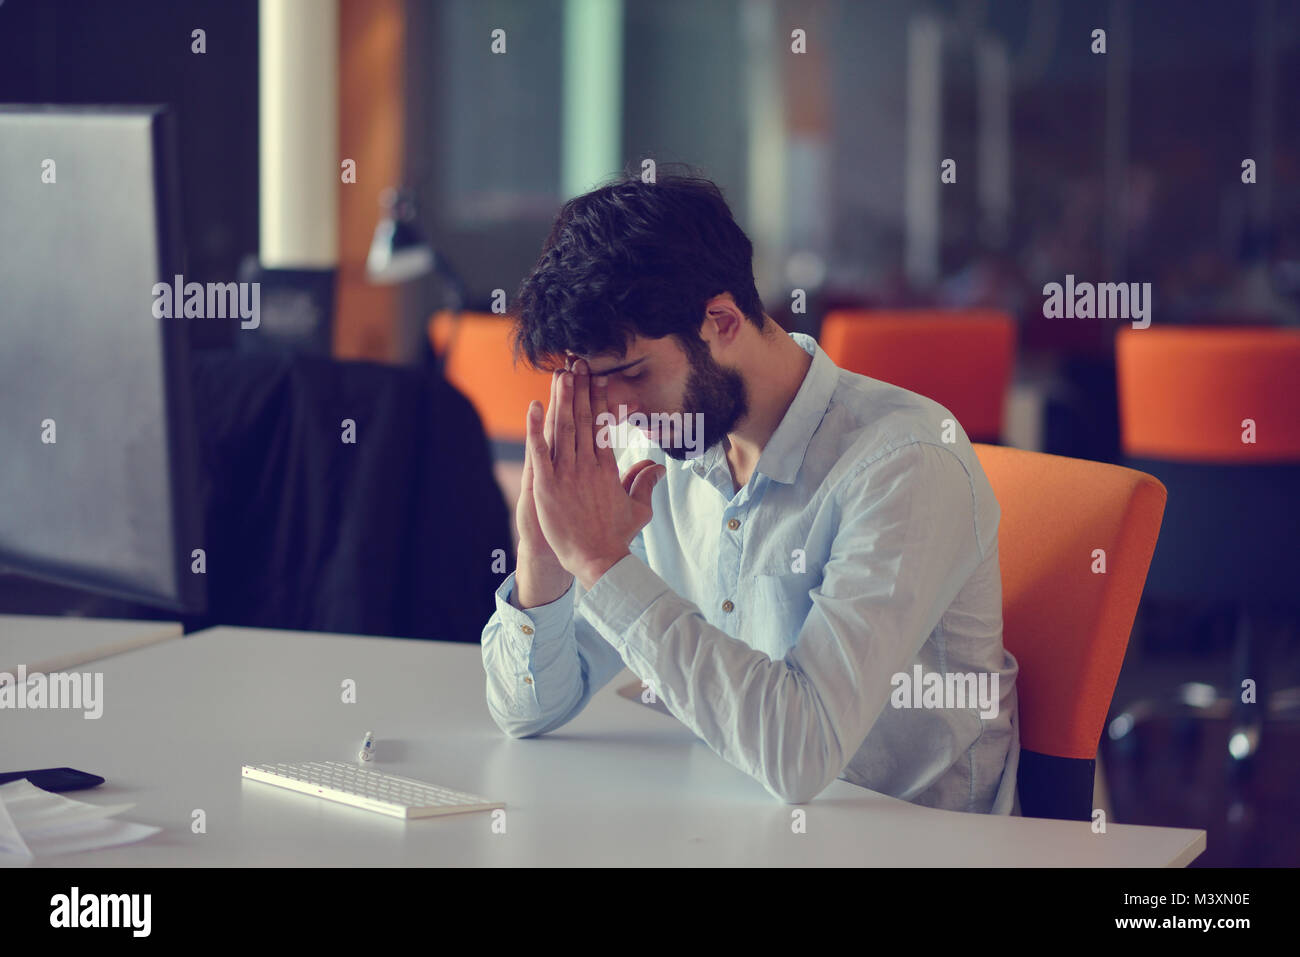 business, startup and people concept - businessman or creative male office worker with computer drinking coffee - Stock Image